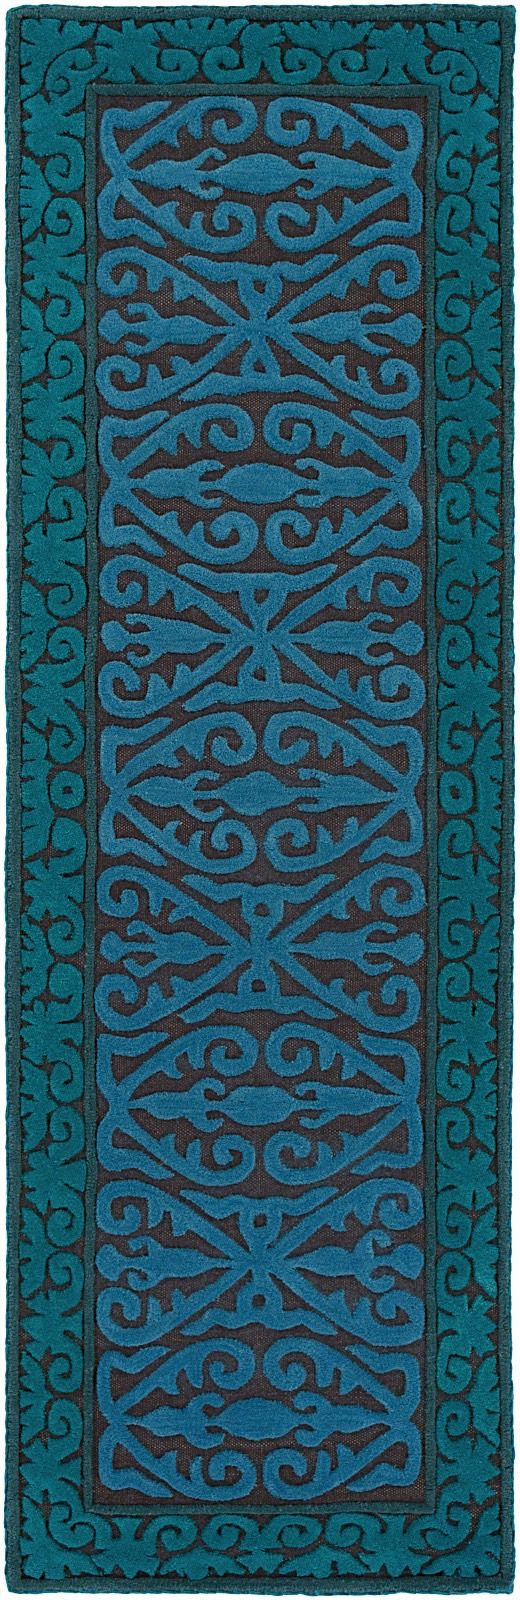 surya tulemola contemporary area rug collection